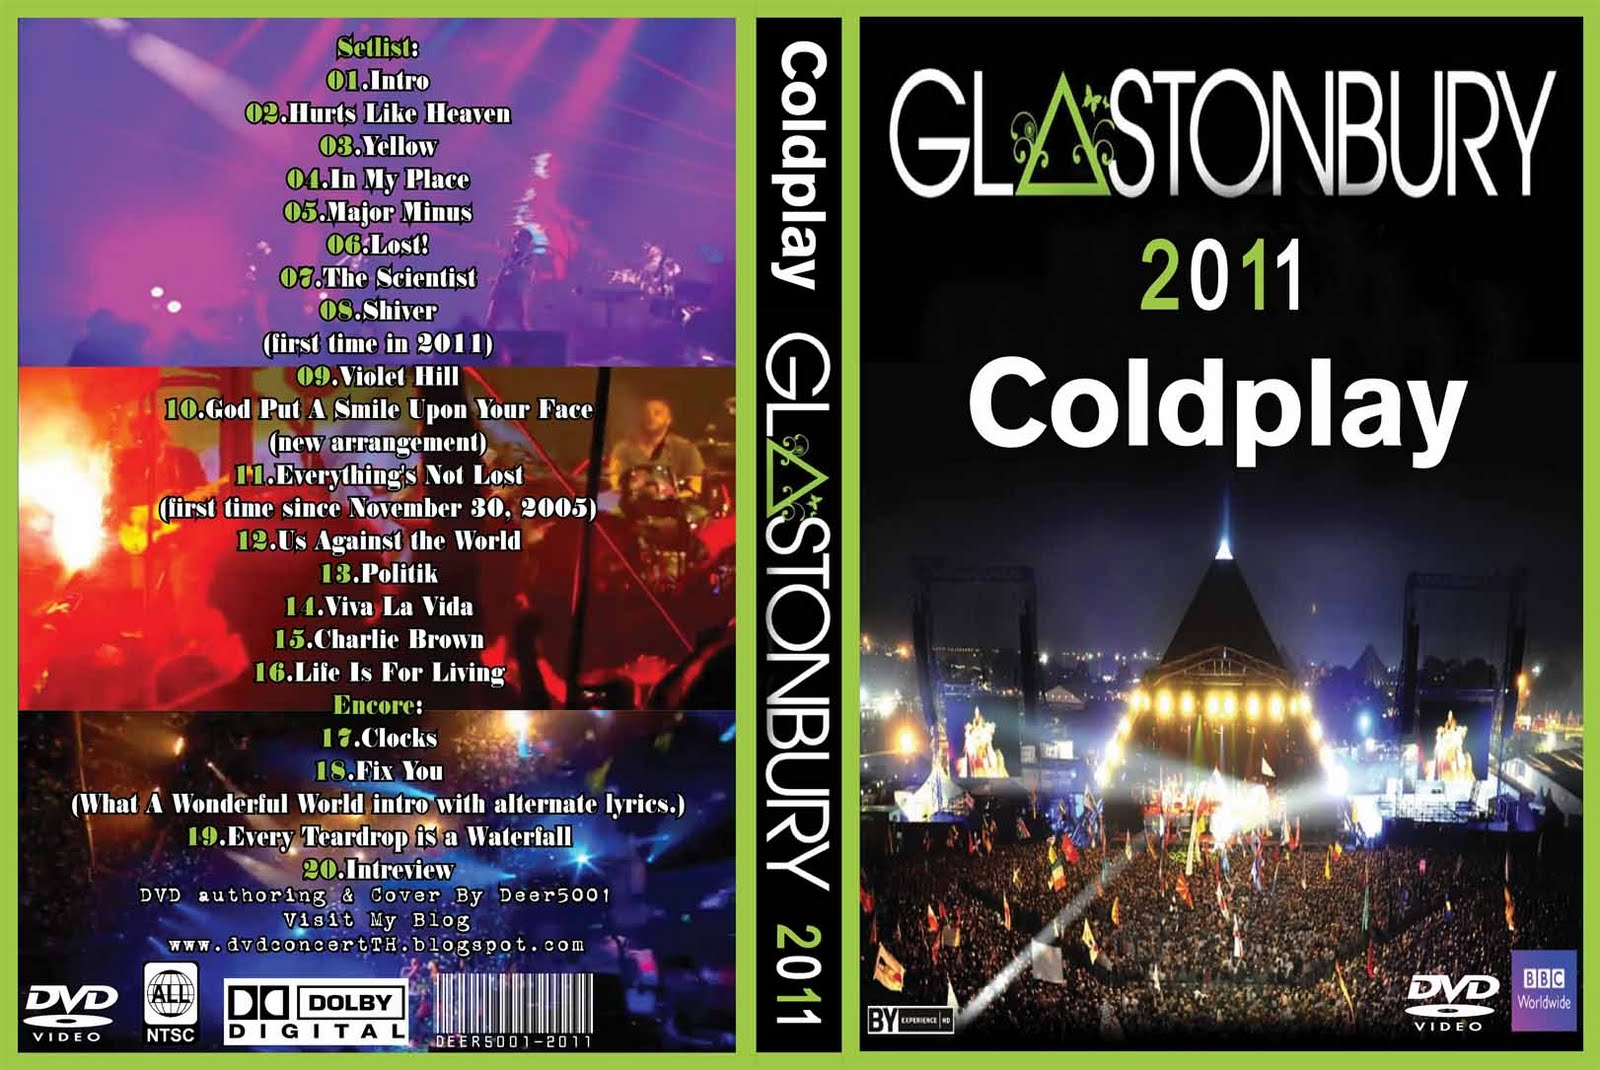 cd coldplay live at glastonbury festival 2011